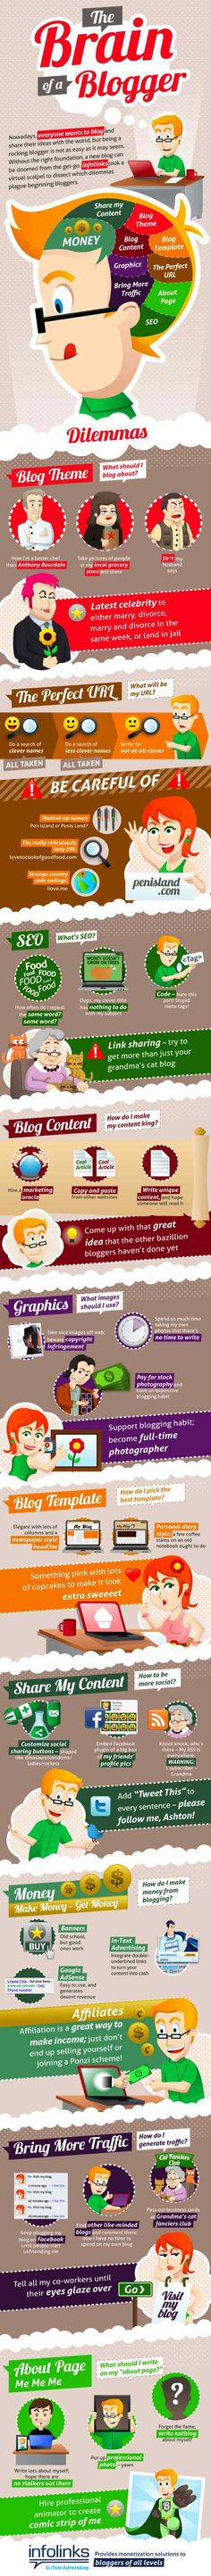 just another cool making-money-blogging infographics. thoughts?